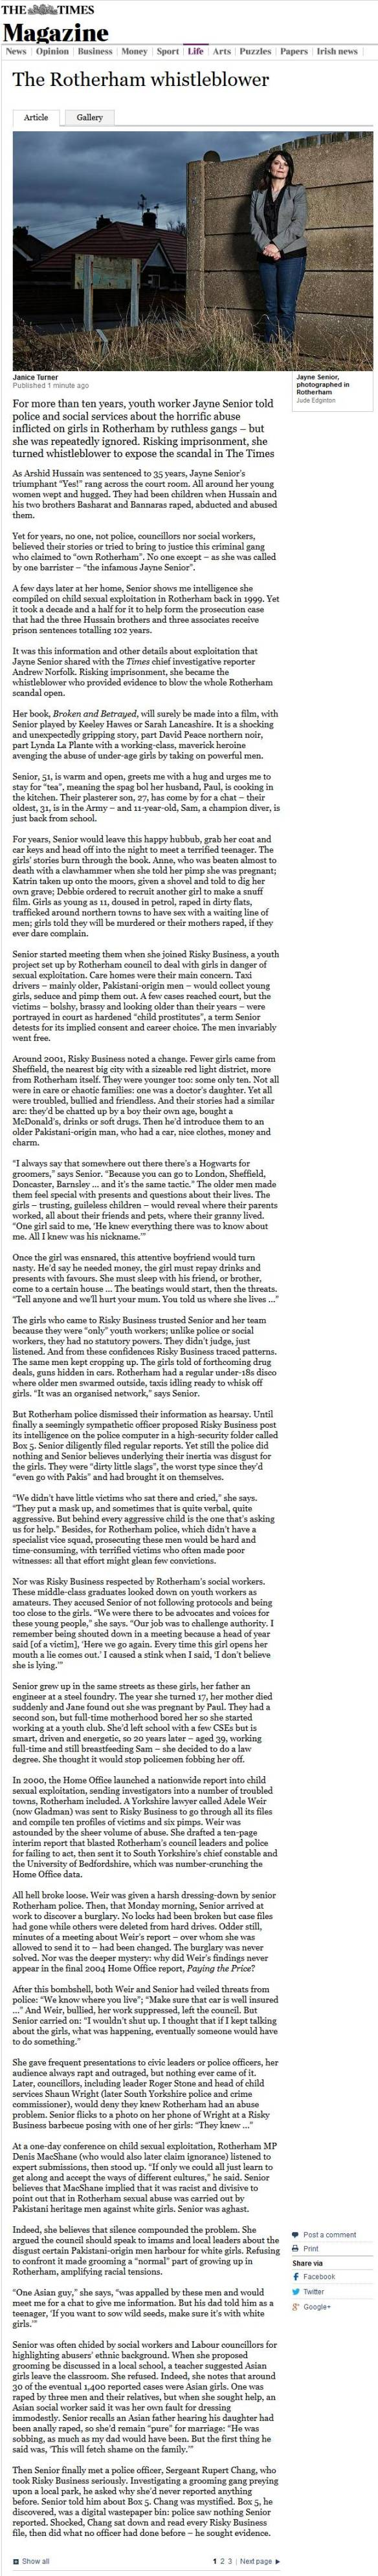 JS Rotherham_whistleblower_The_Times_-_2016-03-19_00.30.13